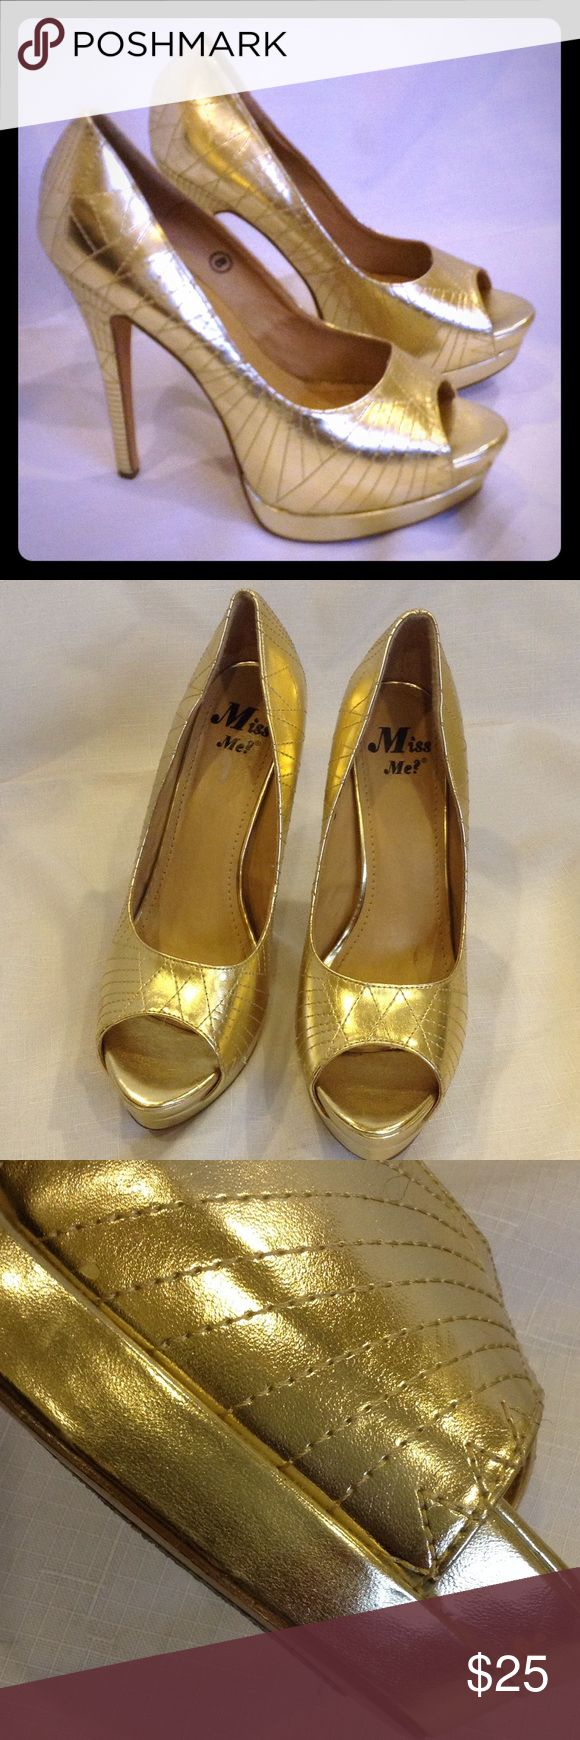 """Miss Me? Quilted Gold Stilettos Very good condition, quilted lame upper, 5.25"""" heel, two flaws on right shoe seen in third photo. Miss Me Shoes Heels"""